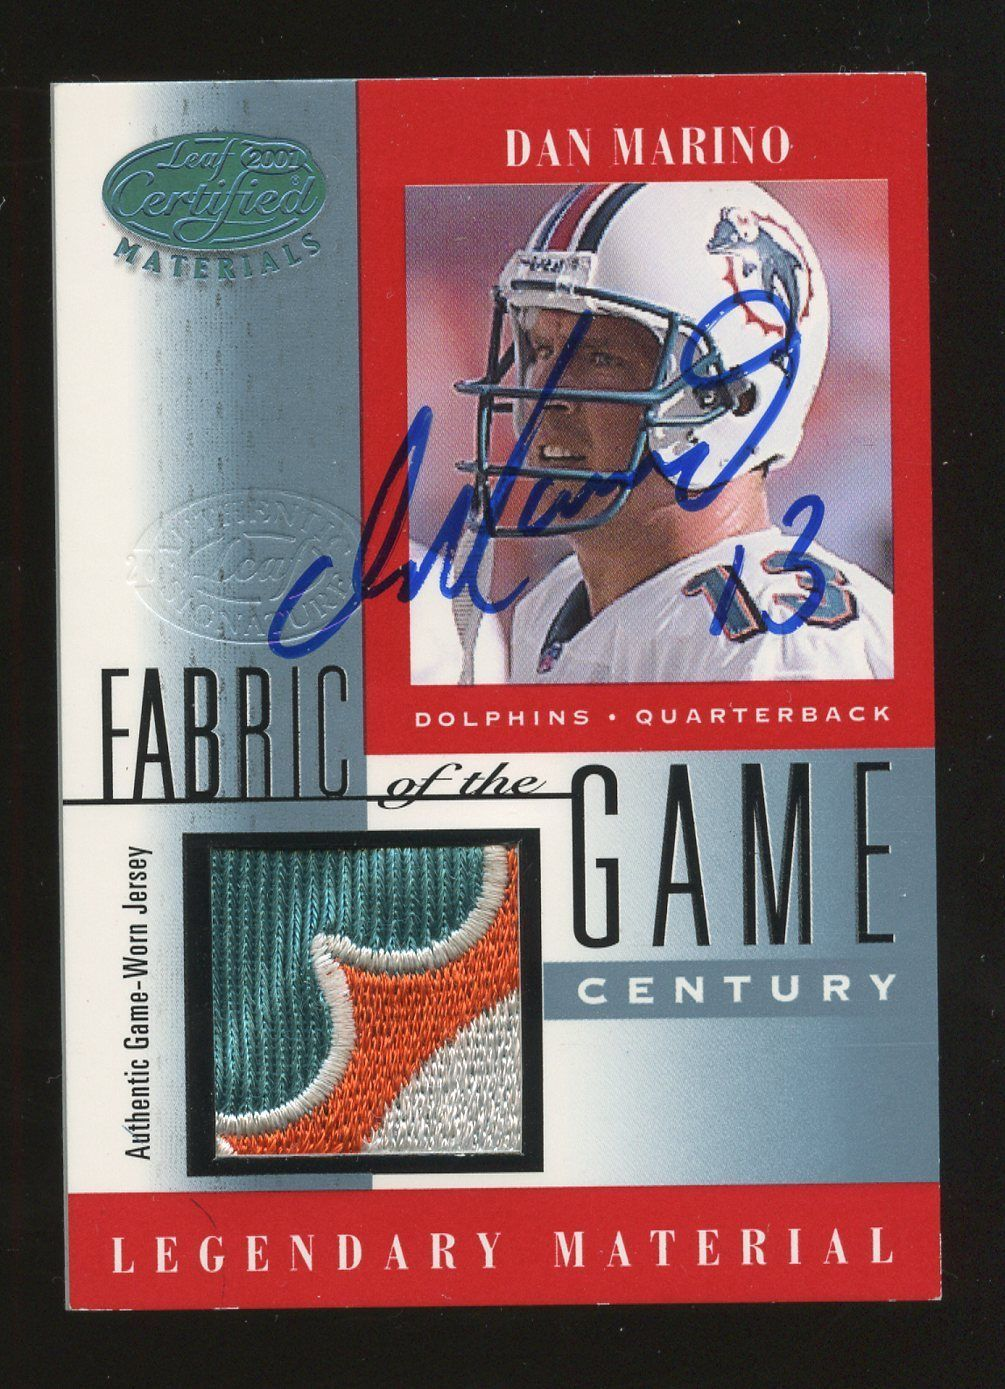 2001 leaf certified fabric of the game dan marino dolphins